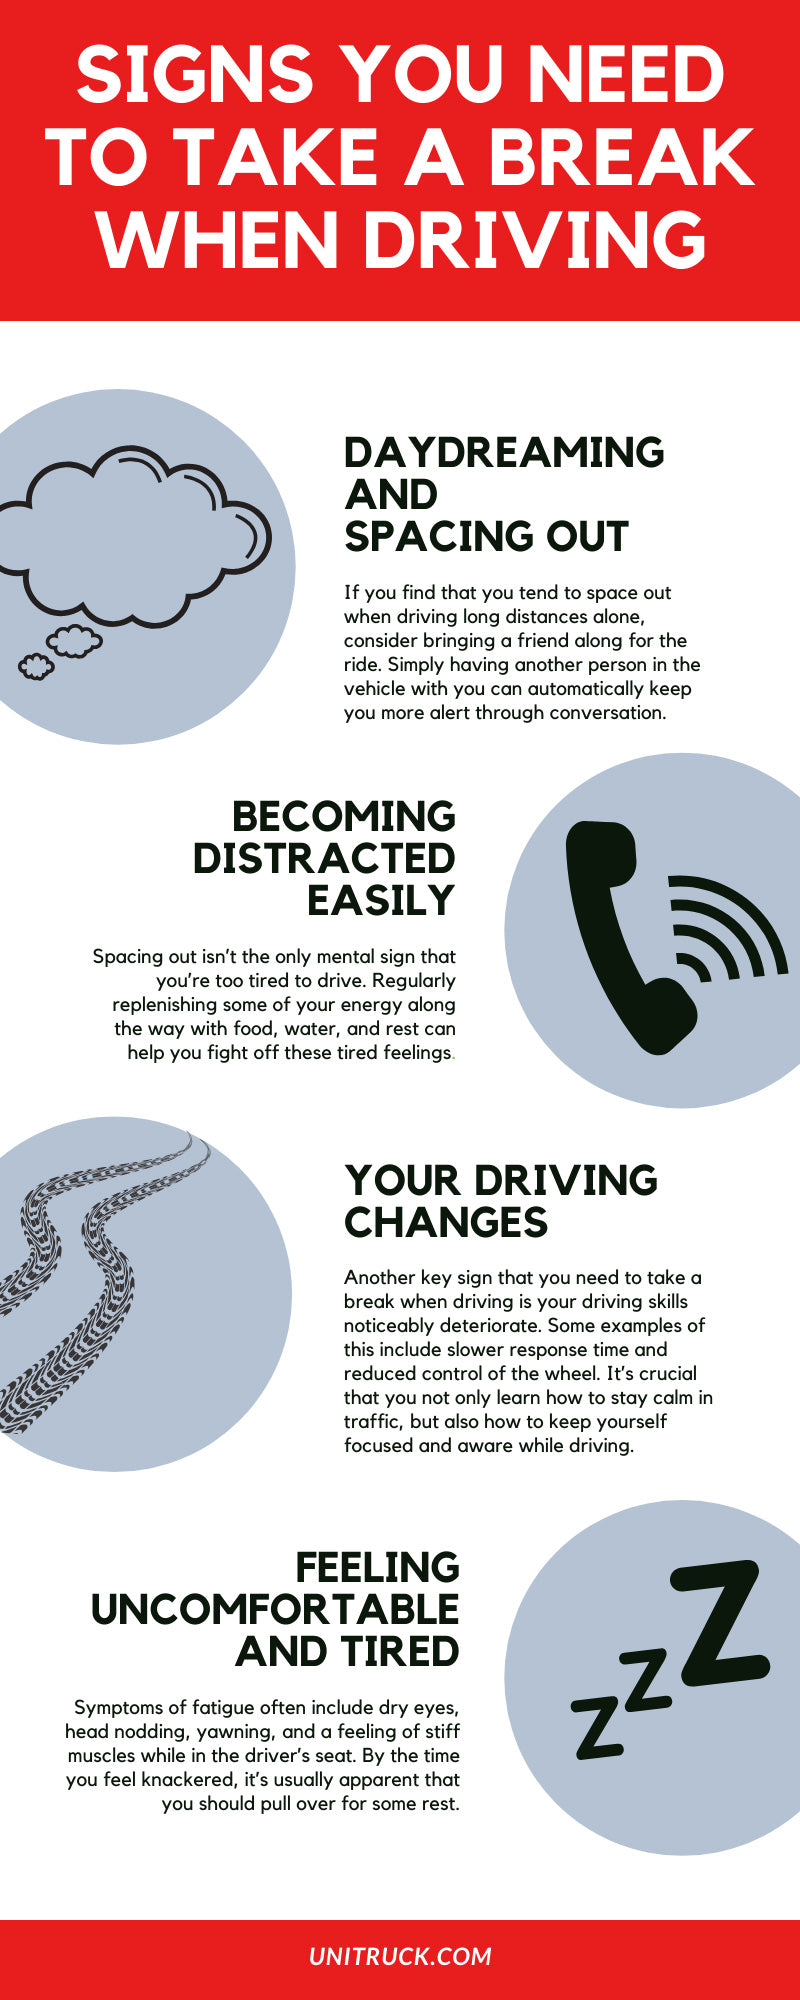 Signs You Need to Take a Break When Driving infographic